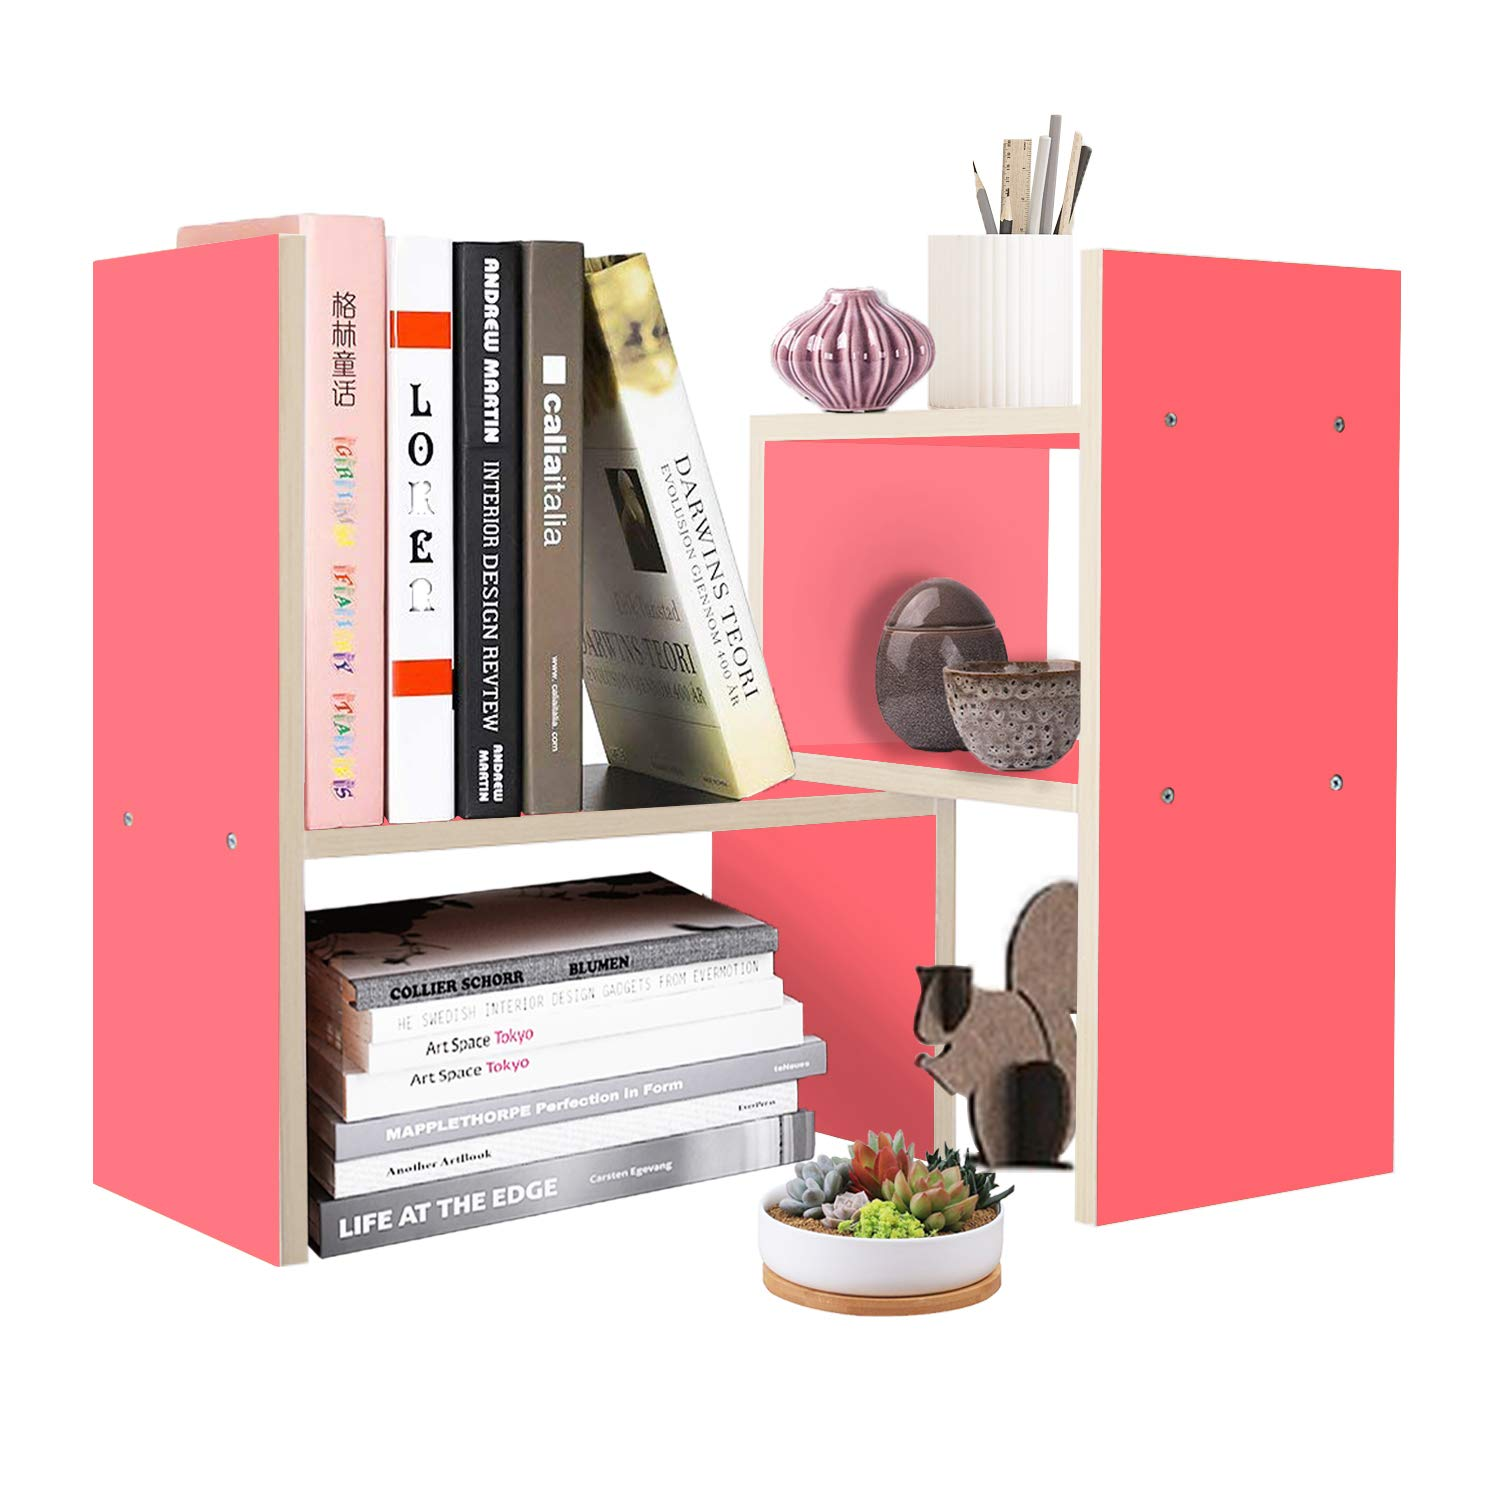 DL furniture Expandable Wood Desktop Storage Organizer Multipurpose Desk Bookshelf Display Shelf Rack Counter Top Bookcase for Office Home | Pink